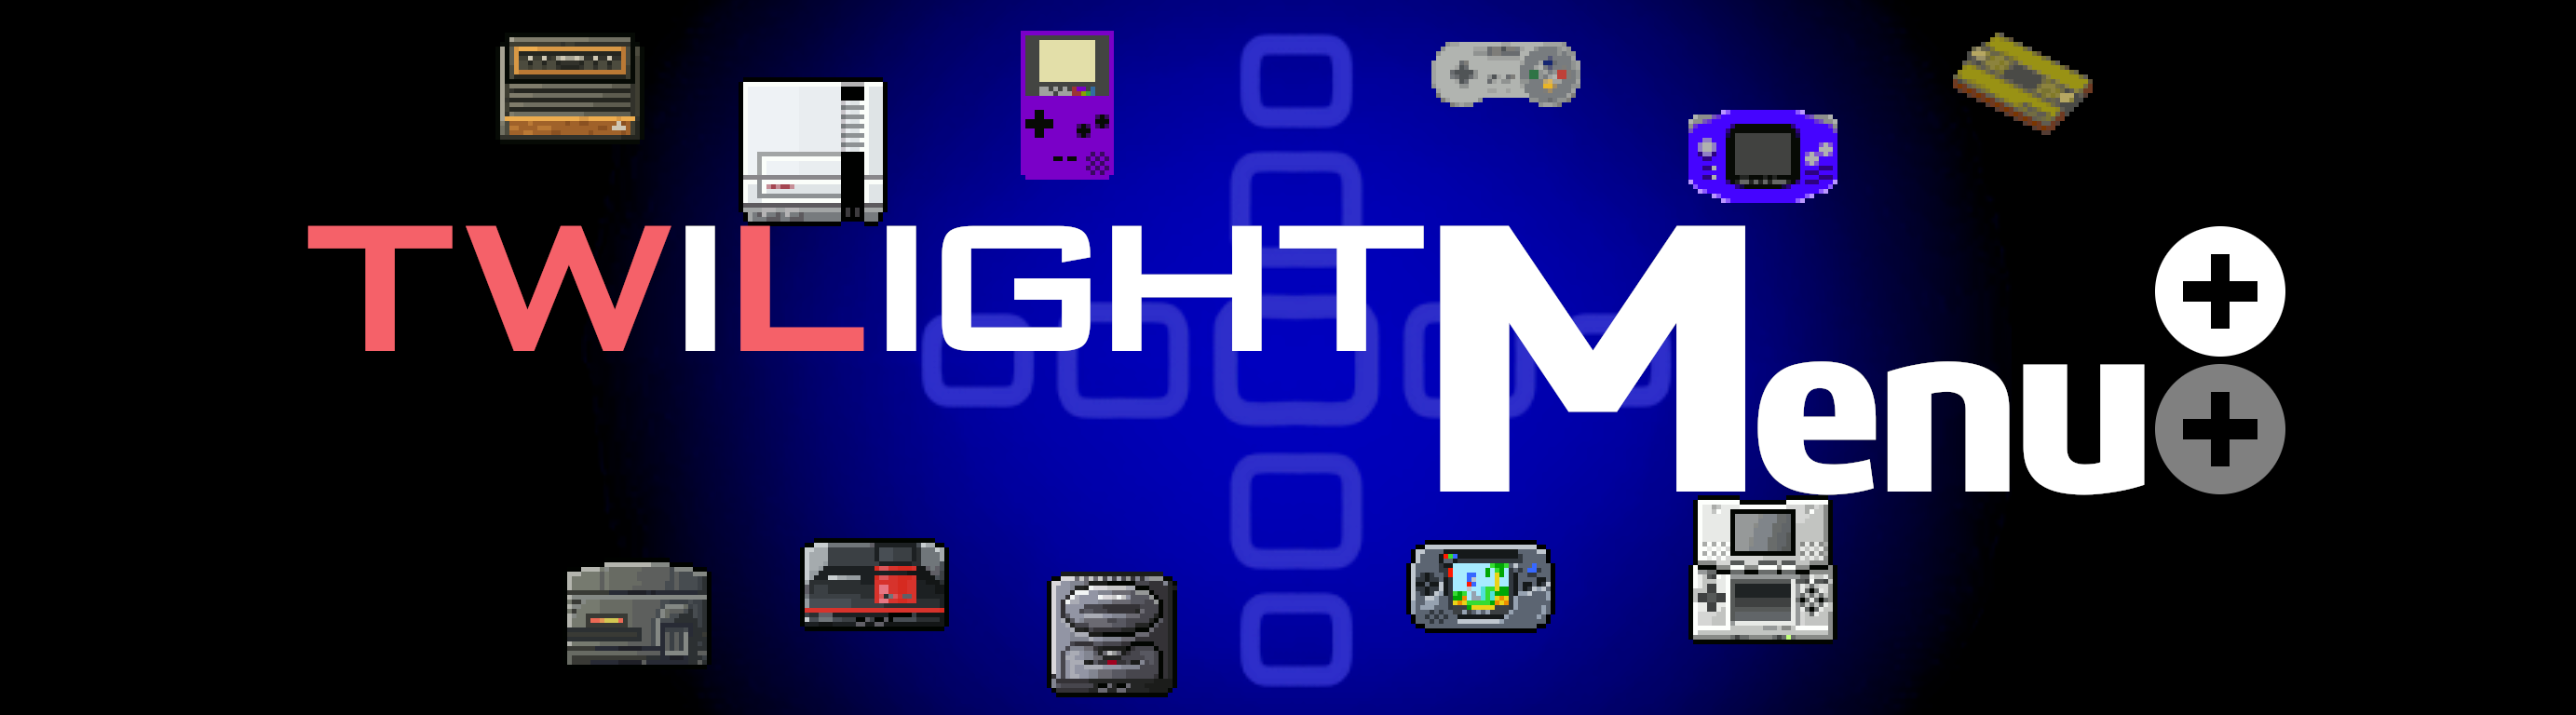 TWiLight Menu++